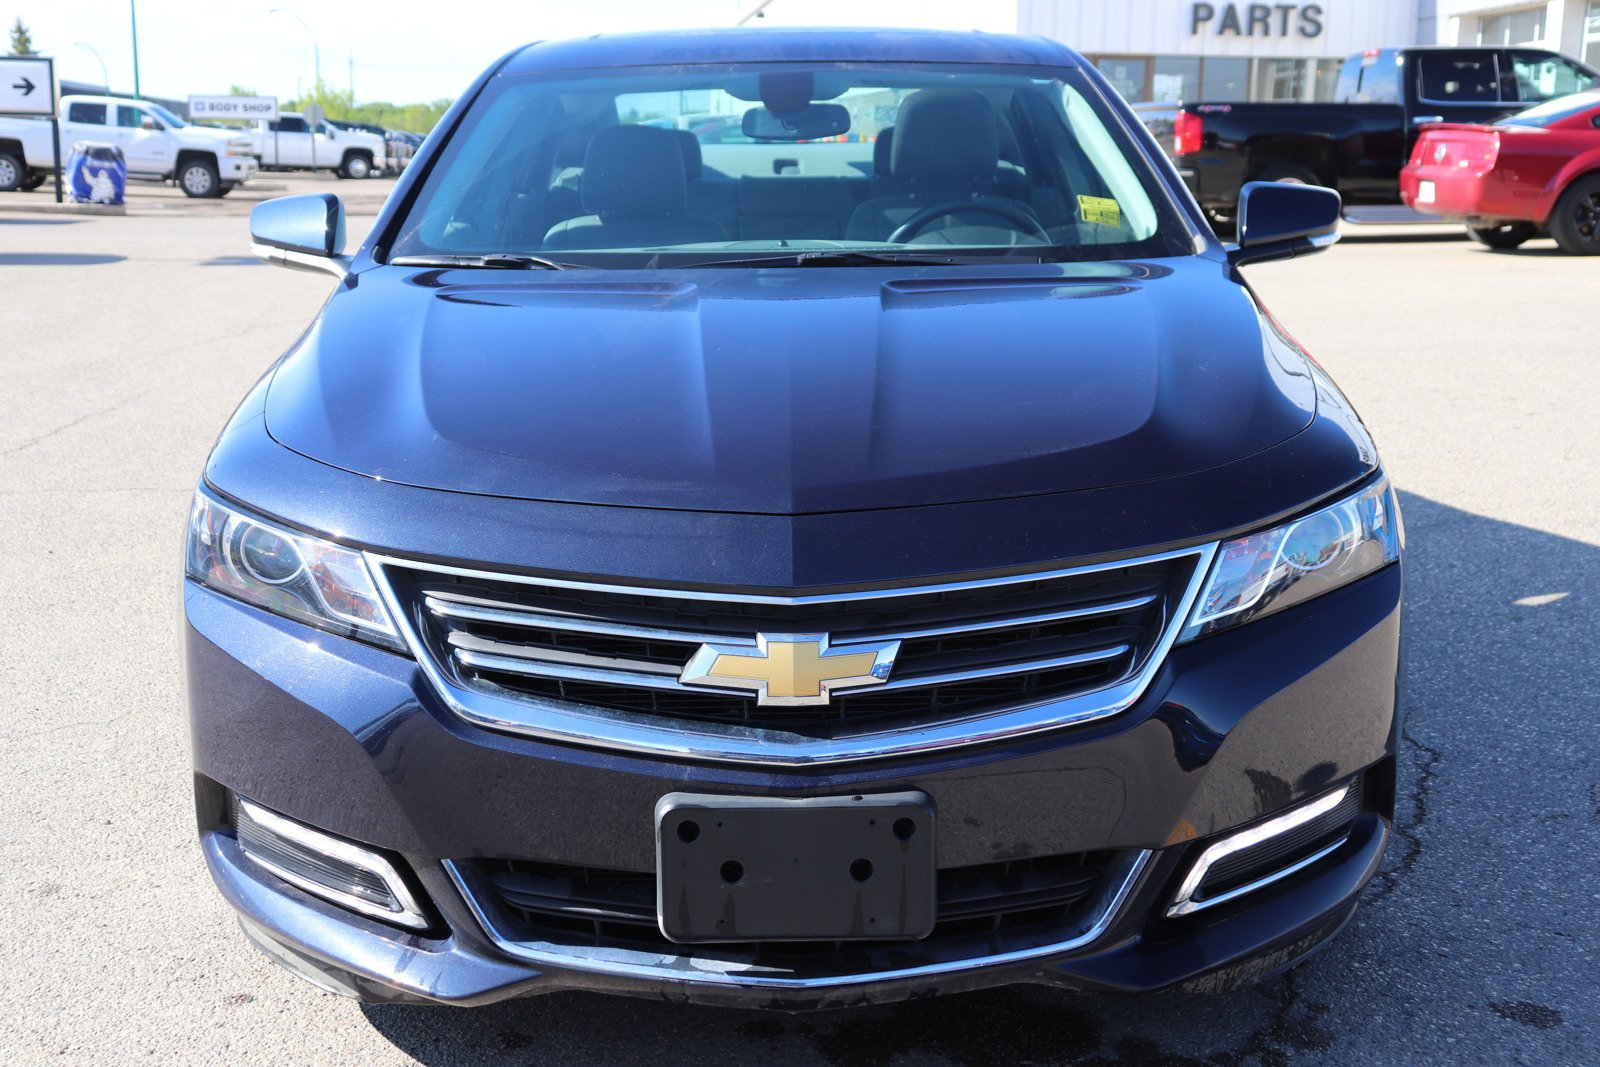 Certified Pre-Owned 2019 Chevrolet Impala LT - Leather, Remote Start, Sunroof, Back Up Camera